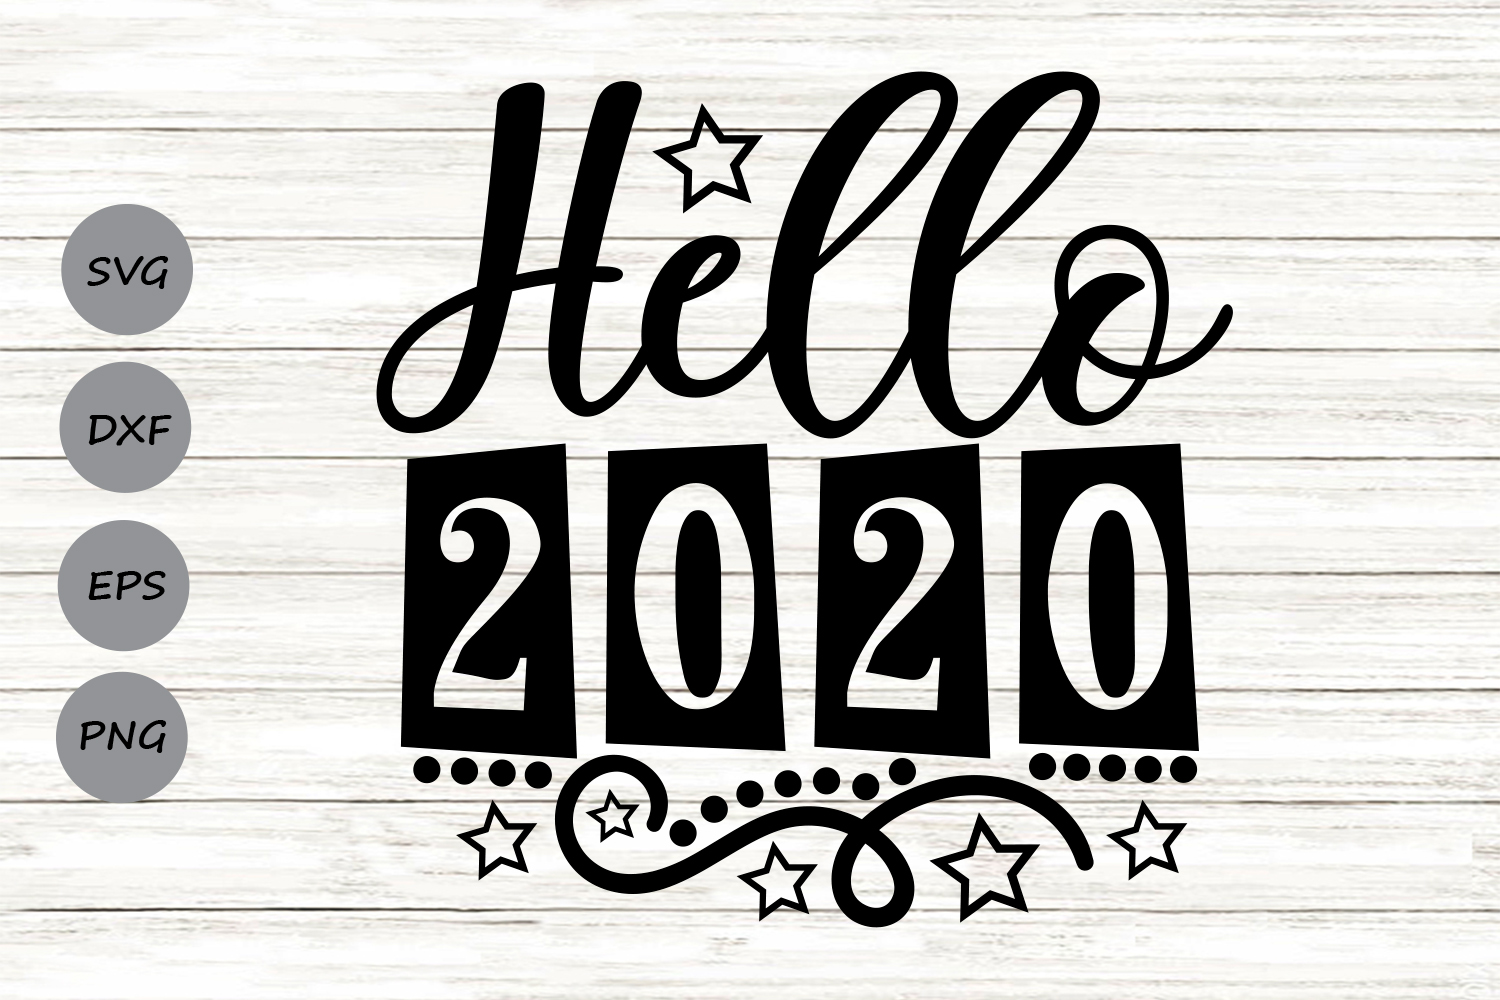 Download Free Hello 2020 Grafik Von Cosmosfineart Creative Fabrica for Cricut Explore, Silhouette and other cutting machines.